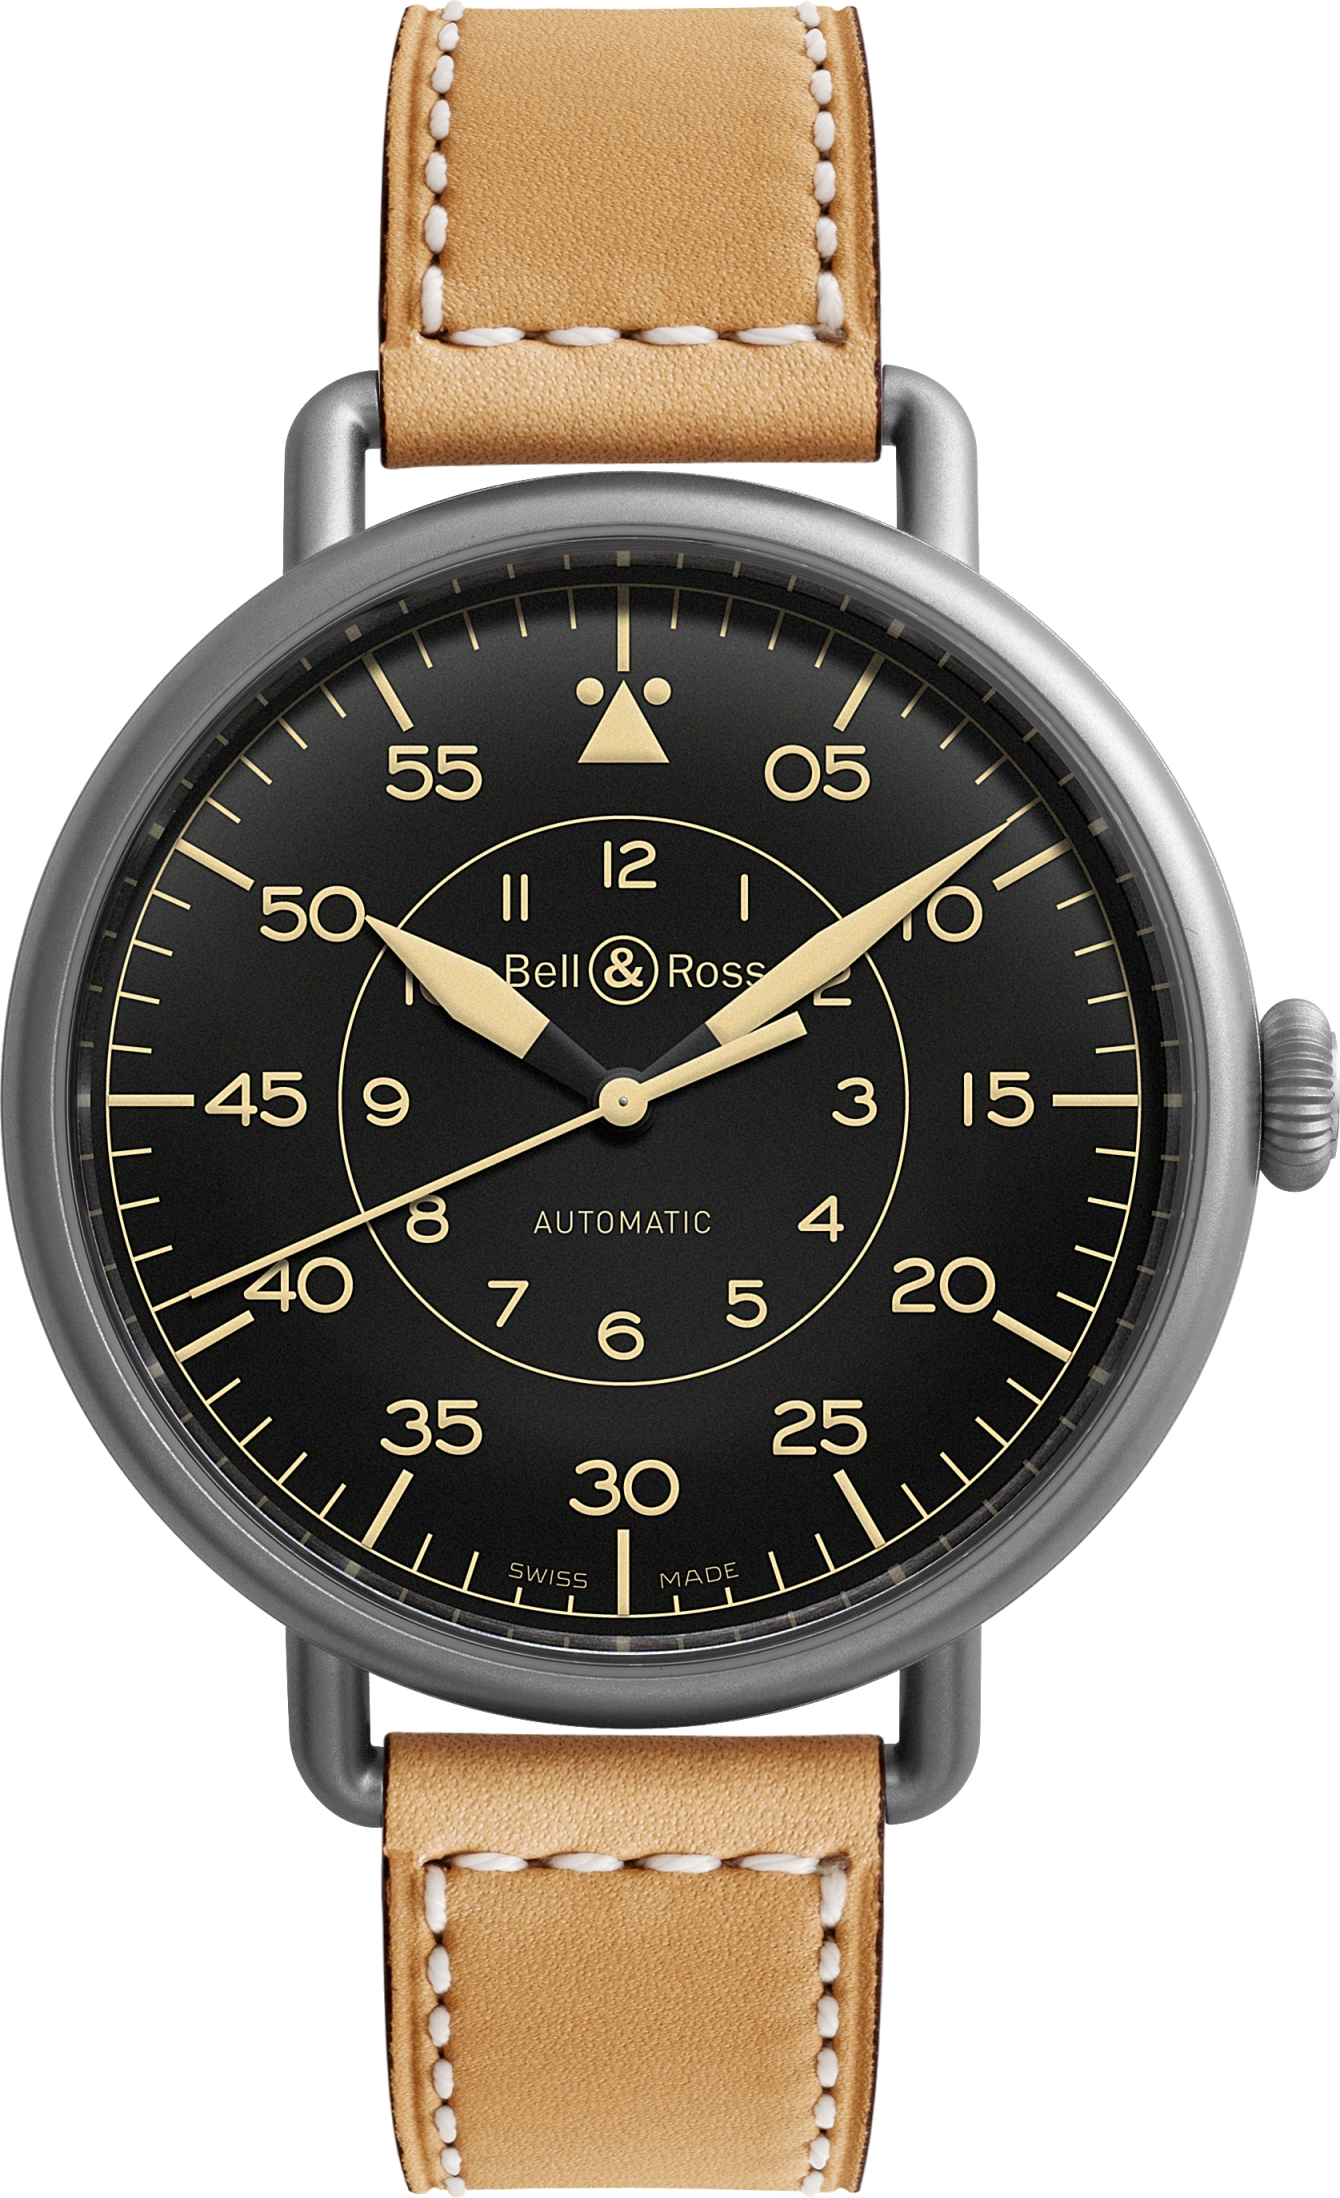 BellRoss_WW1-92-Heritage-Folded-Transparent-Bg.jpg